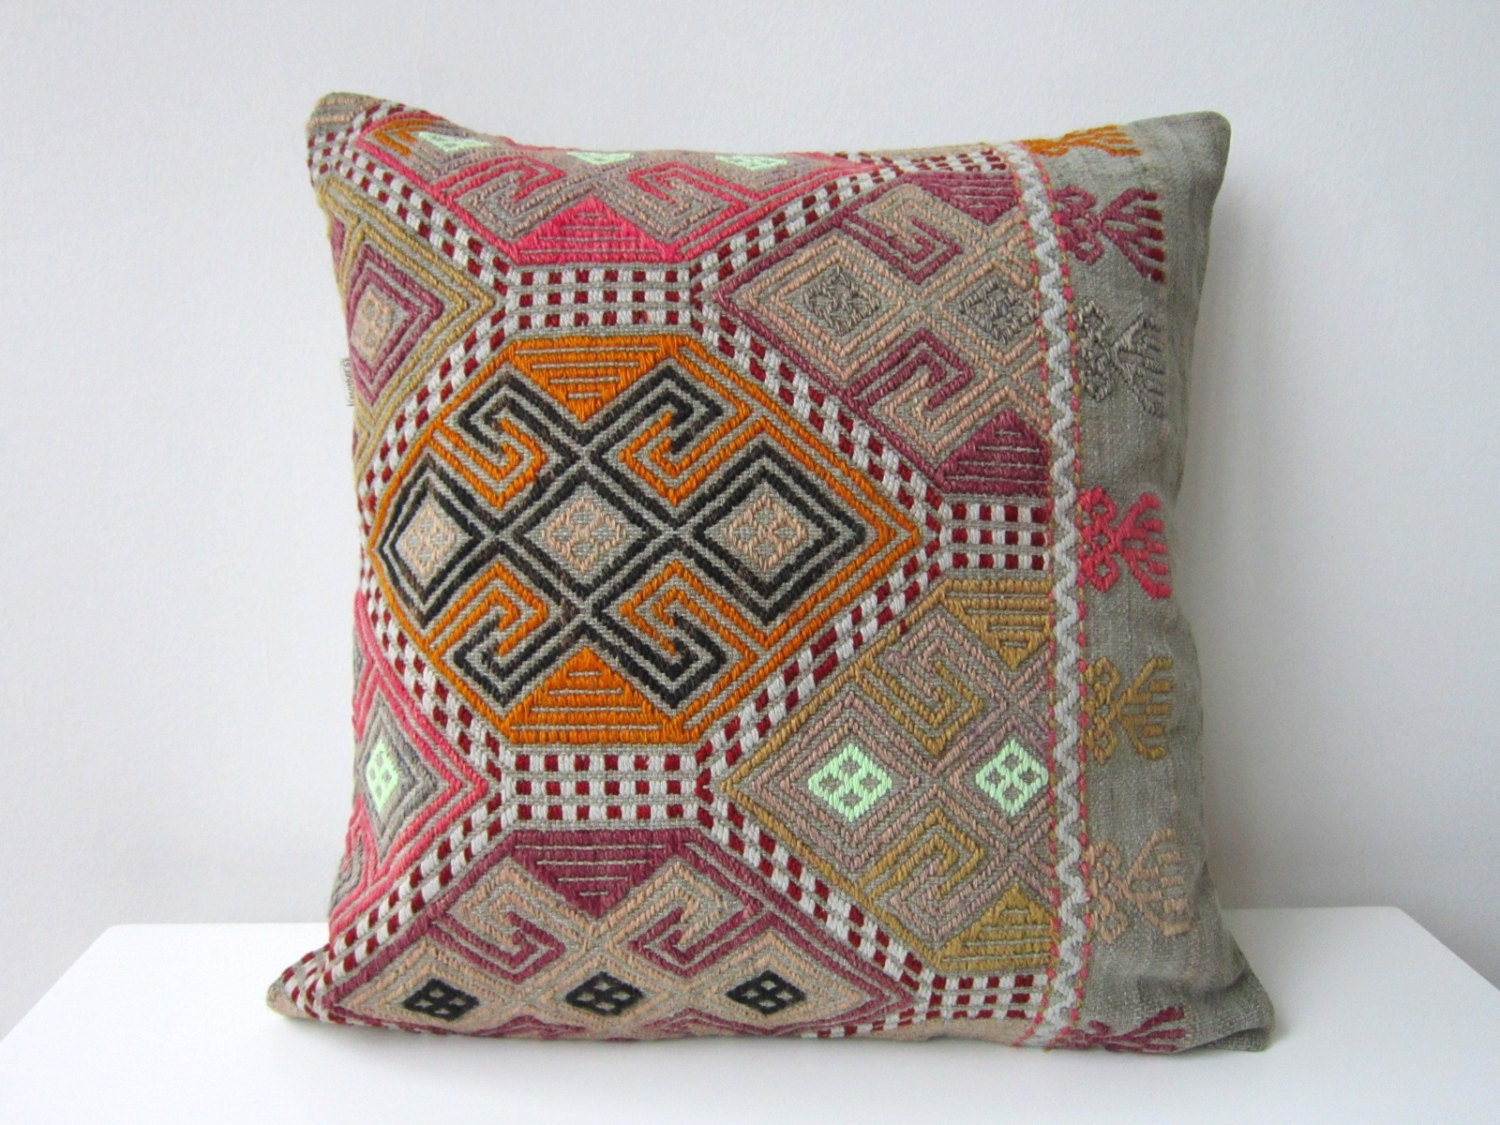 Throw Pillows And Rugs : Handwoven Turkish Rug Pillow Cover Decorative by mothersatelier